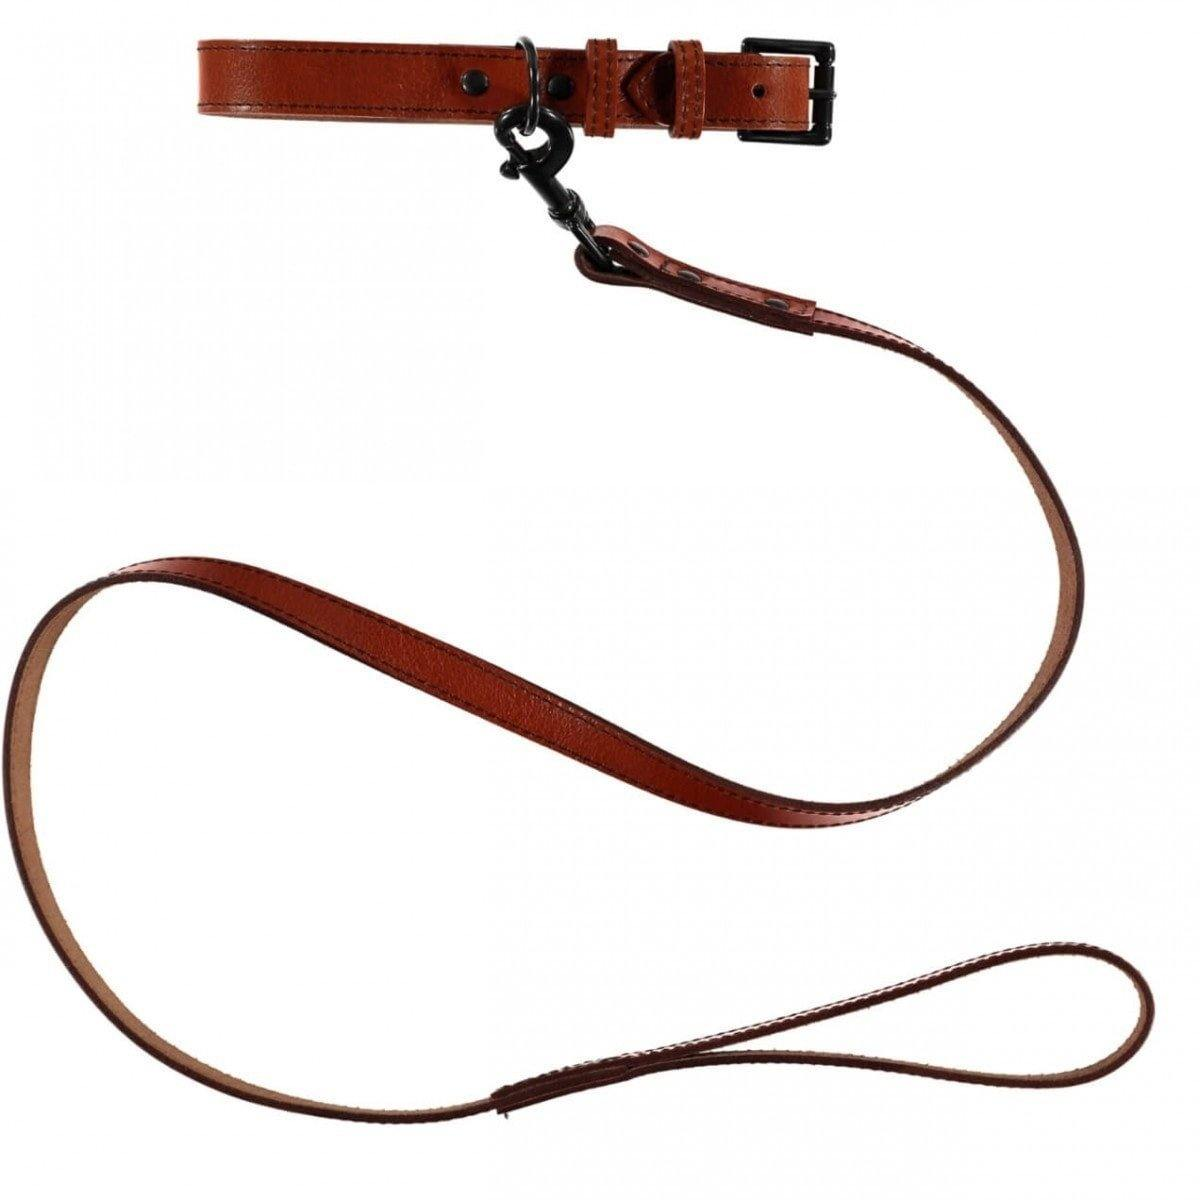 Baker & Bray Dog Apparel X-Small Camden Dog Collar and Lead Set by Baker & Bray - Tan BB-41-01-09-XS & BB-52-01-12 PetsOwnUs - Pets Own Us